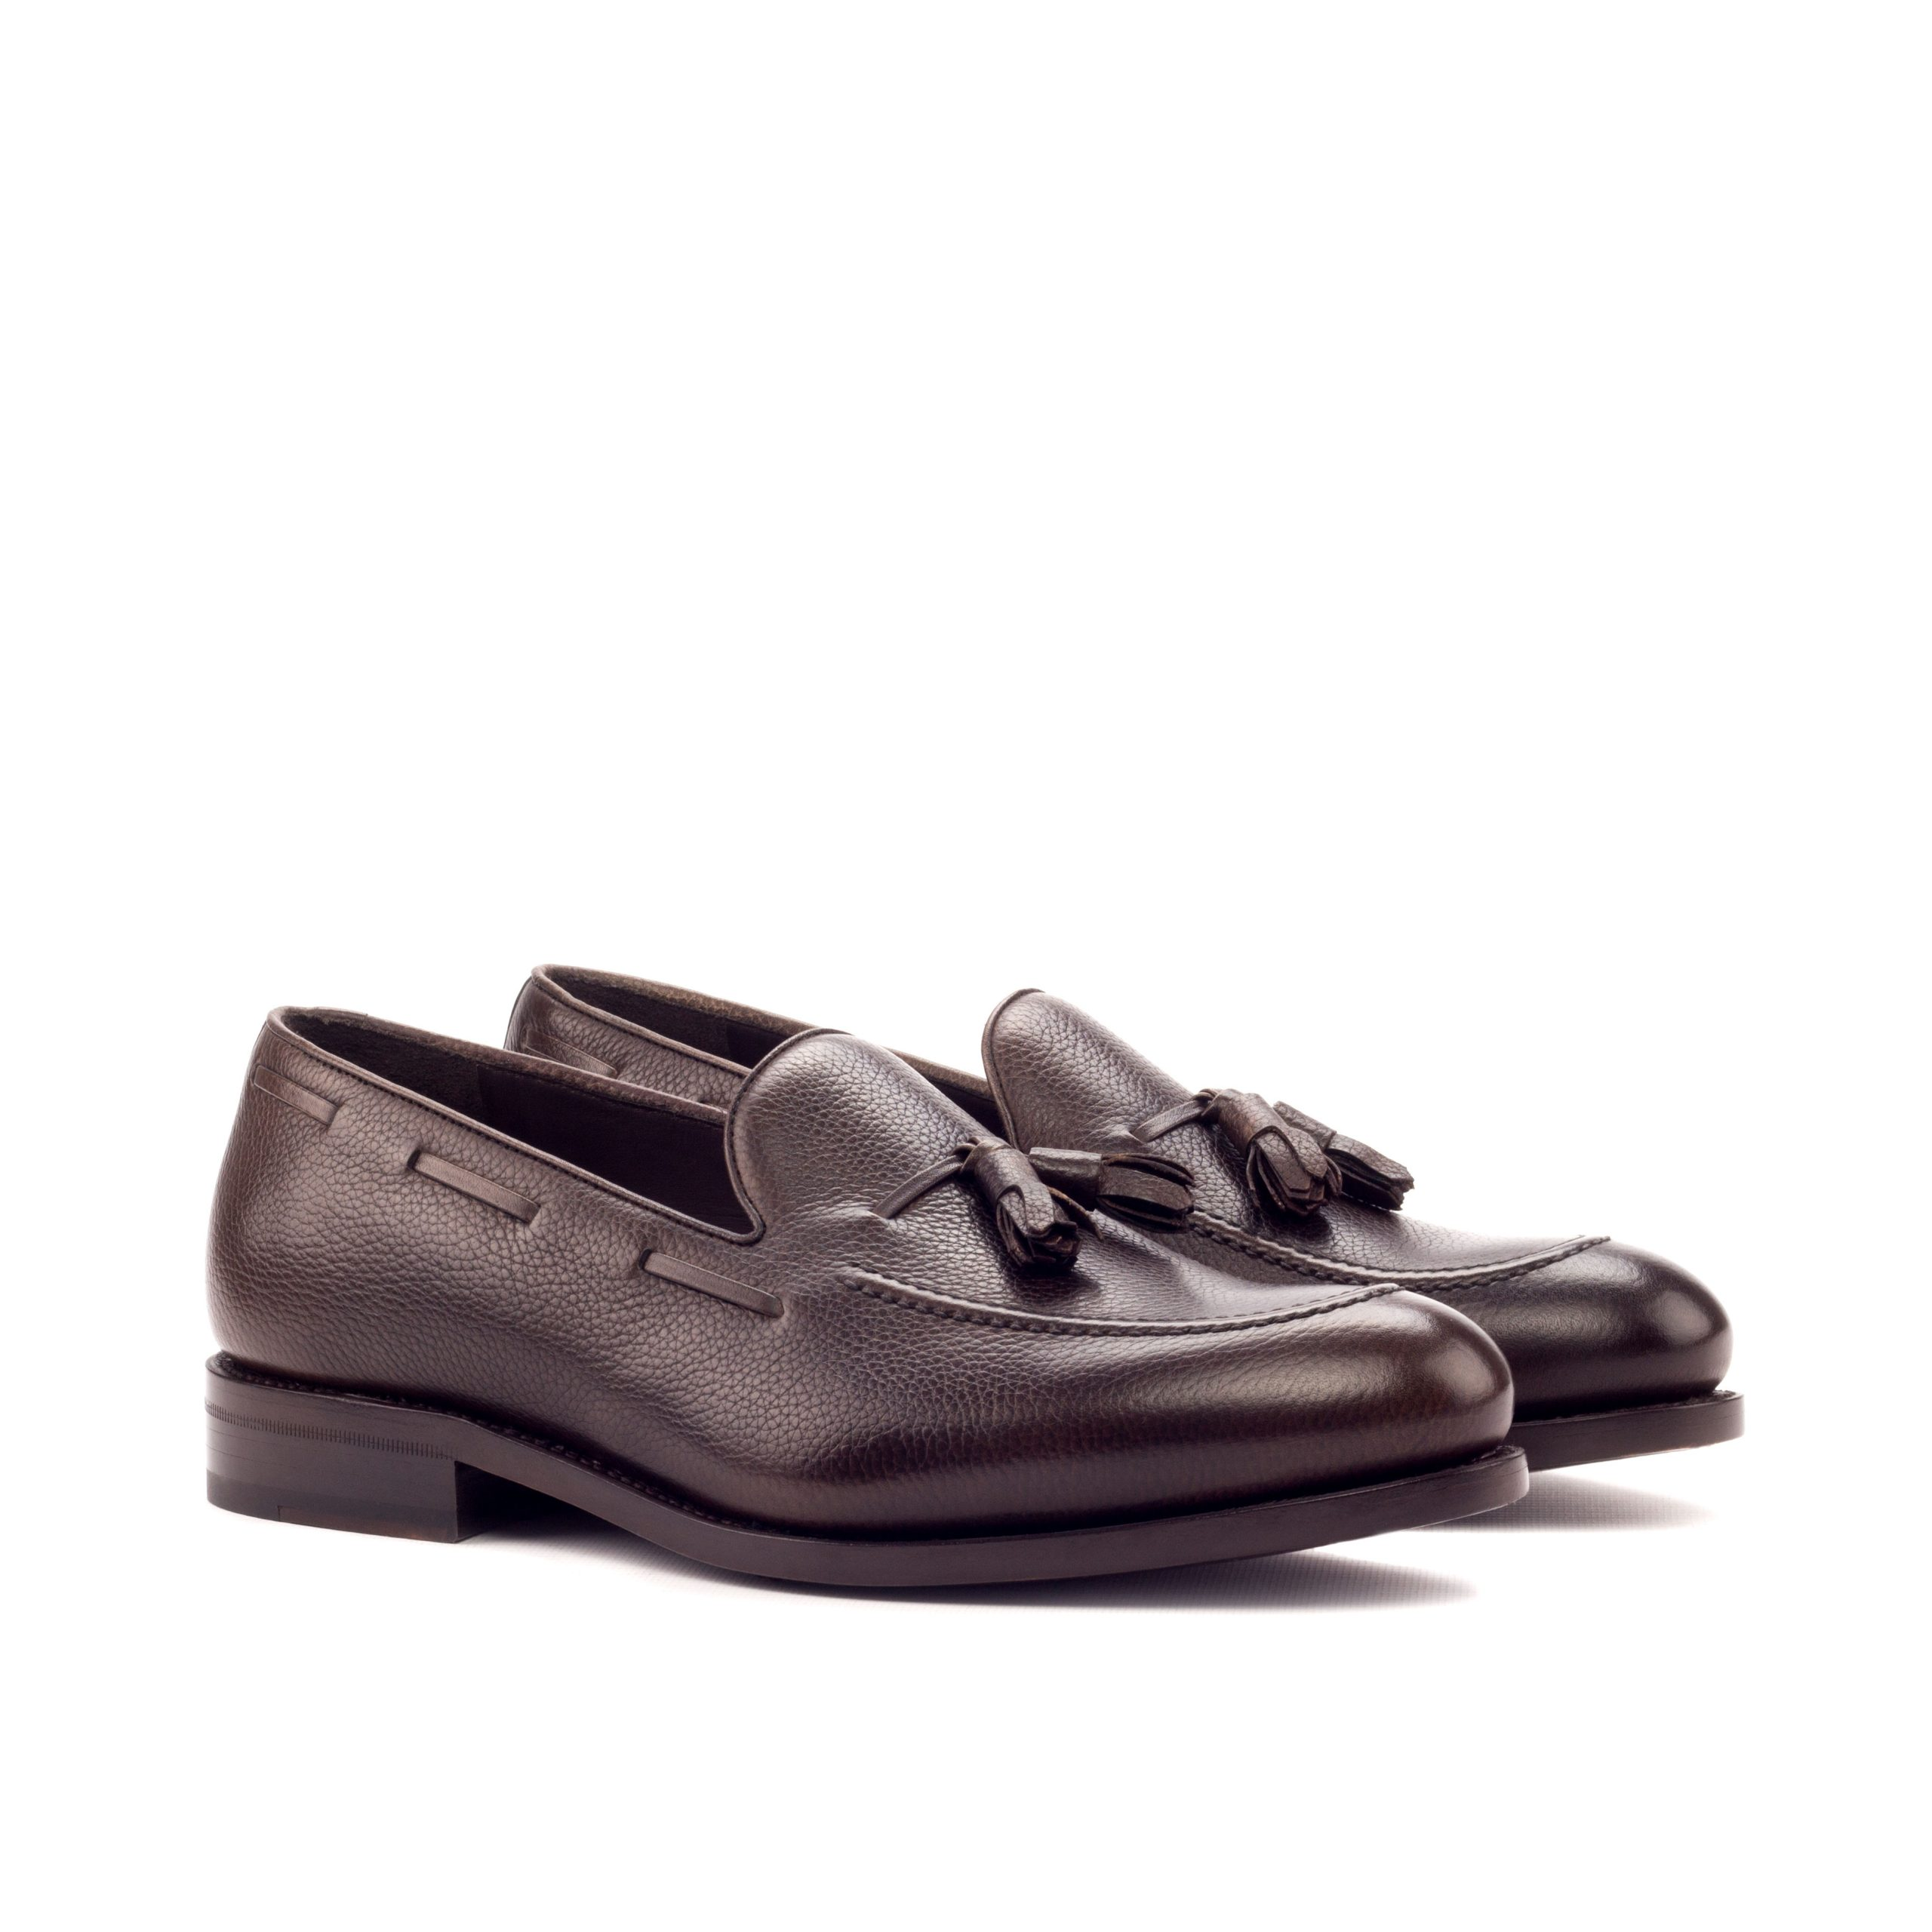 Loafer Goodyear Welted - Painted Full Grain Dark Brown-Ang5